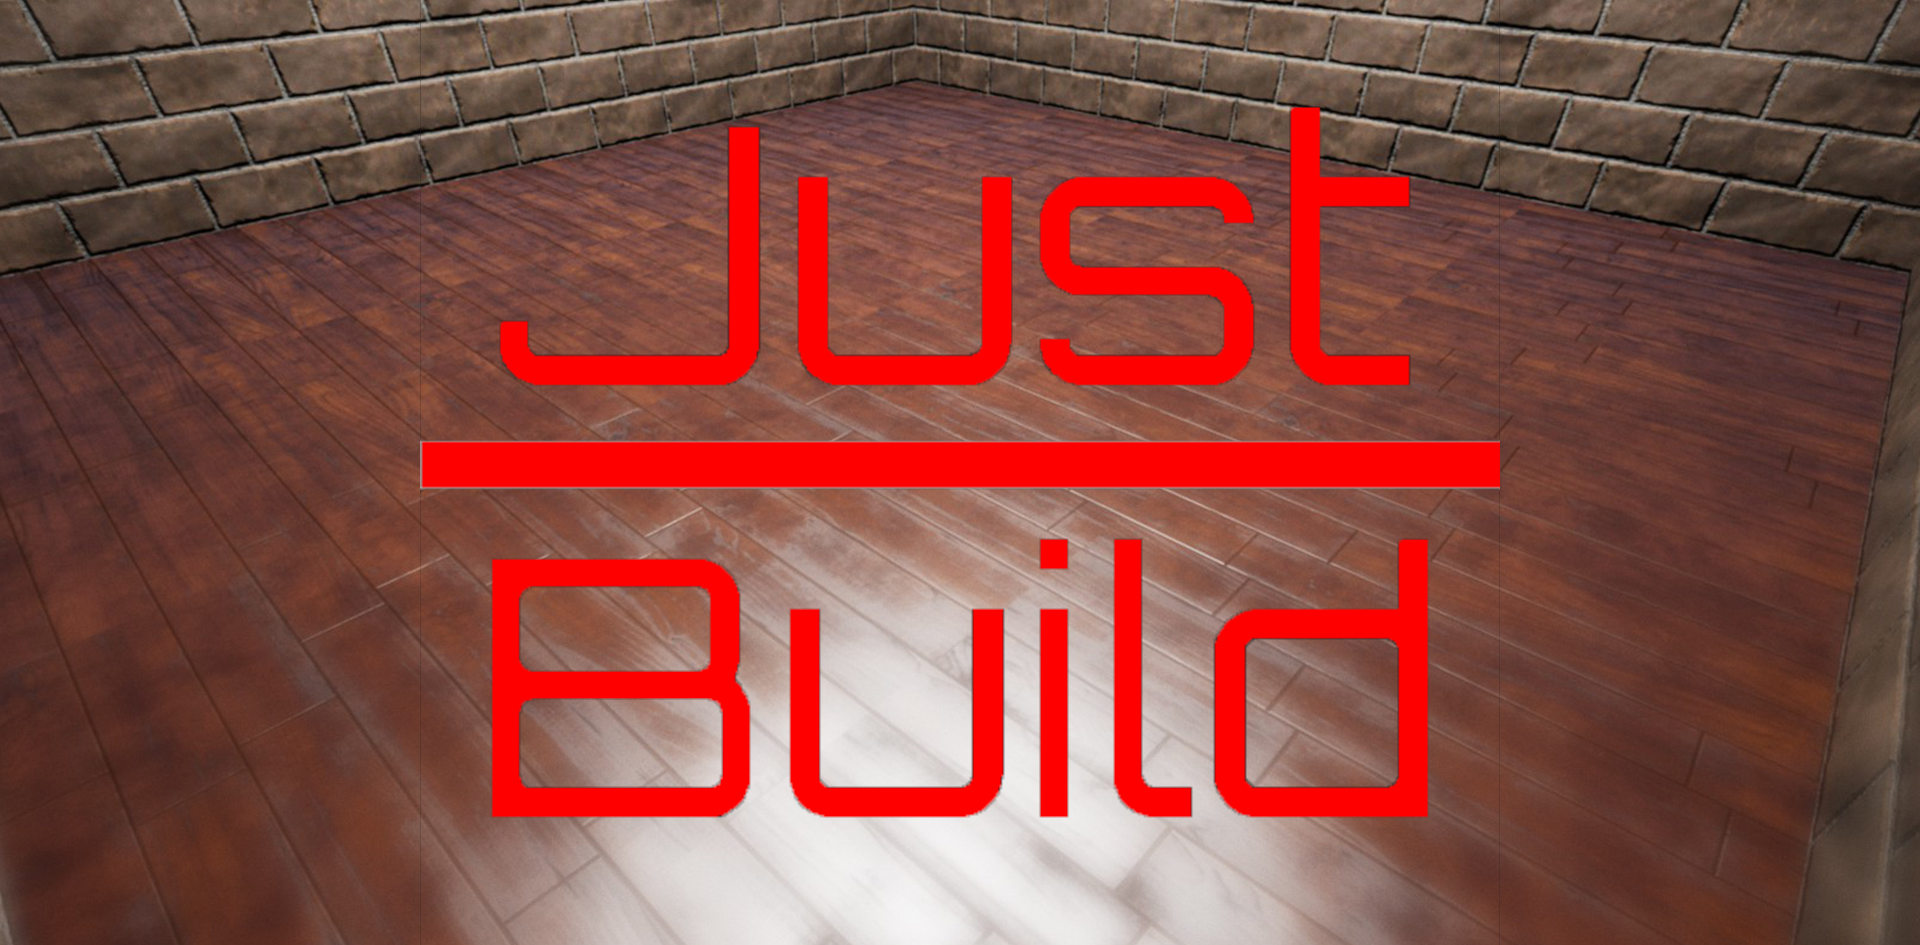 Just Build Prototype